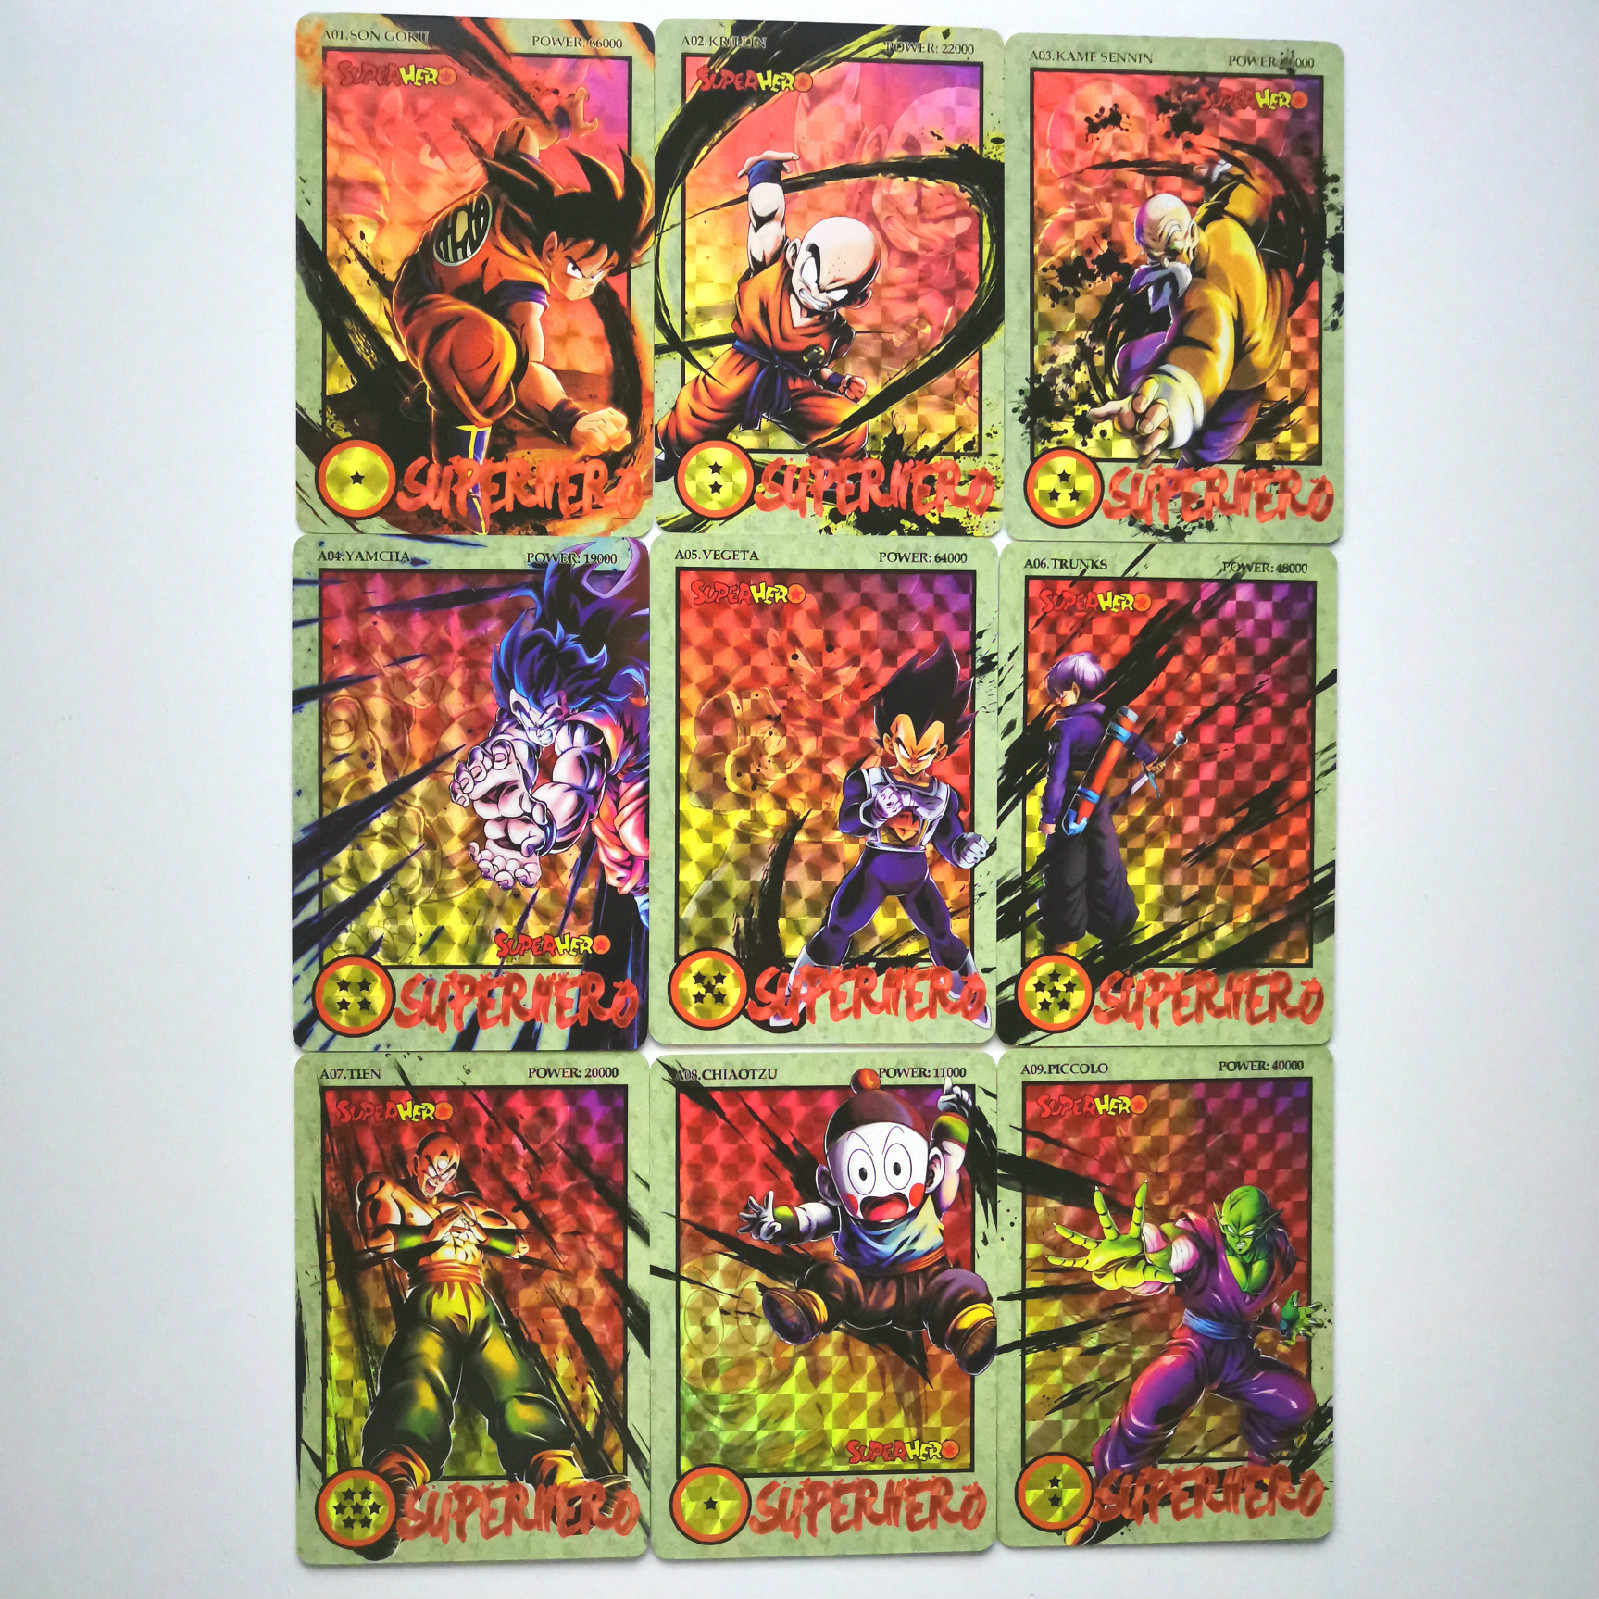 36pcs Super Dragon Ball Z Ink Relief Heroes Battle Card Ultra Instinct Goku Vegeta Super Game Collection Cards